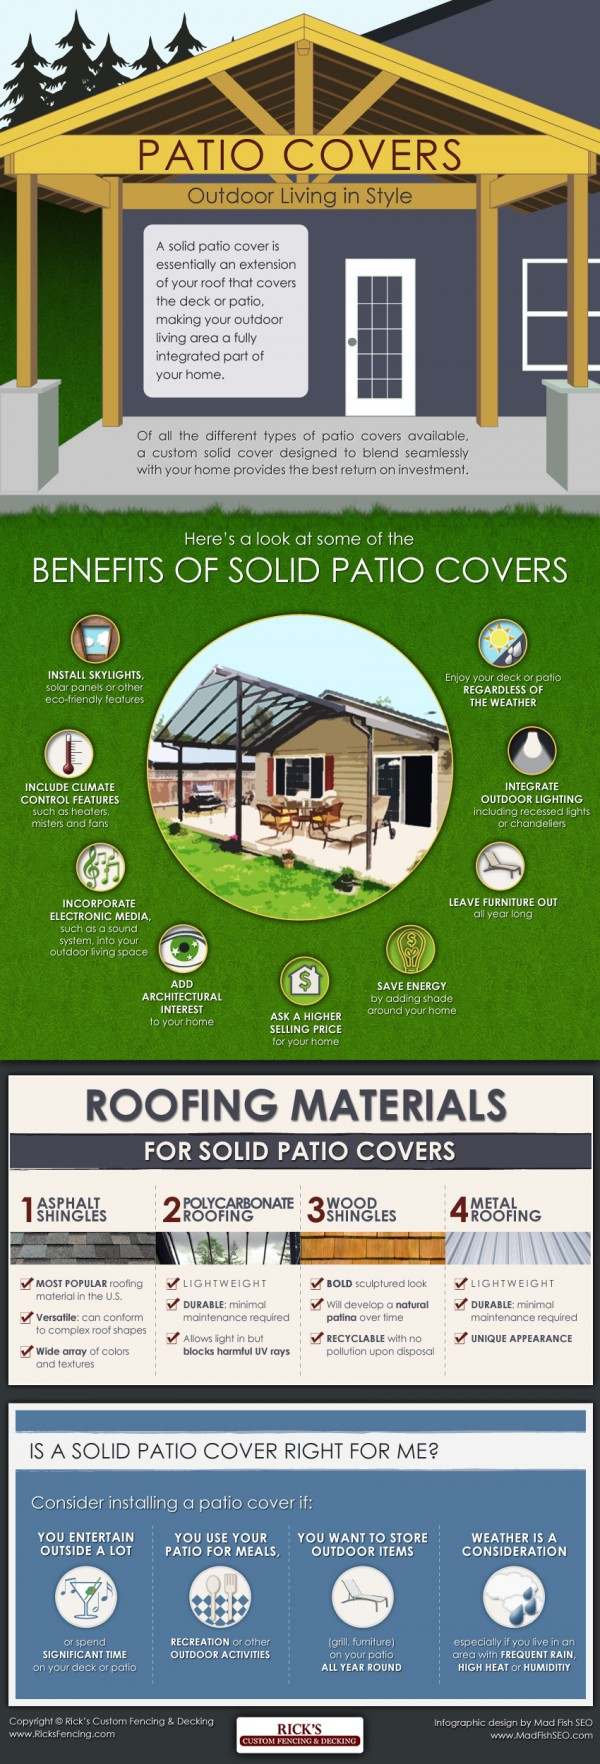 solid-patio-covers-benefits